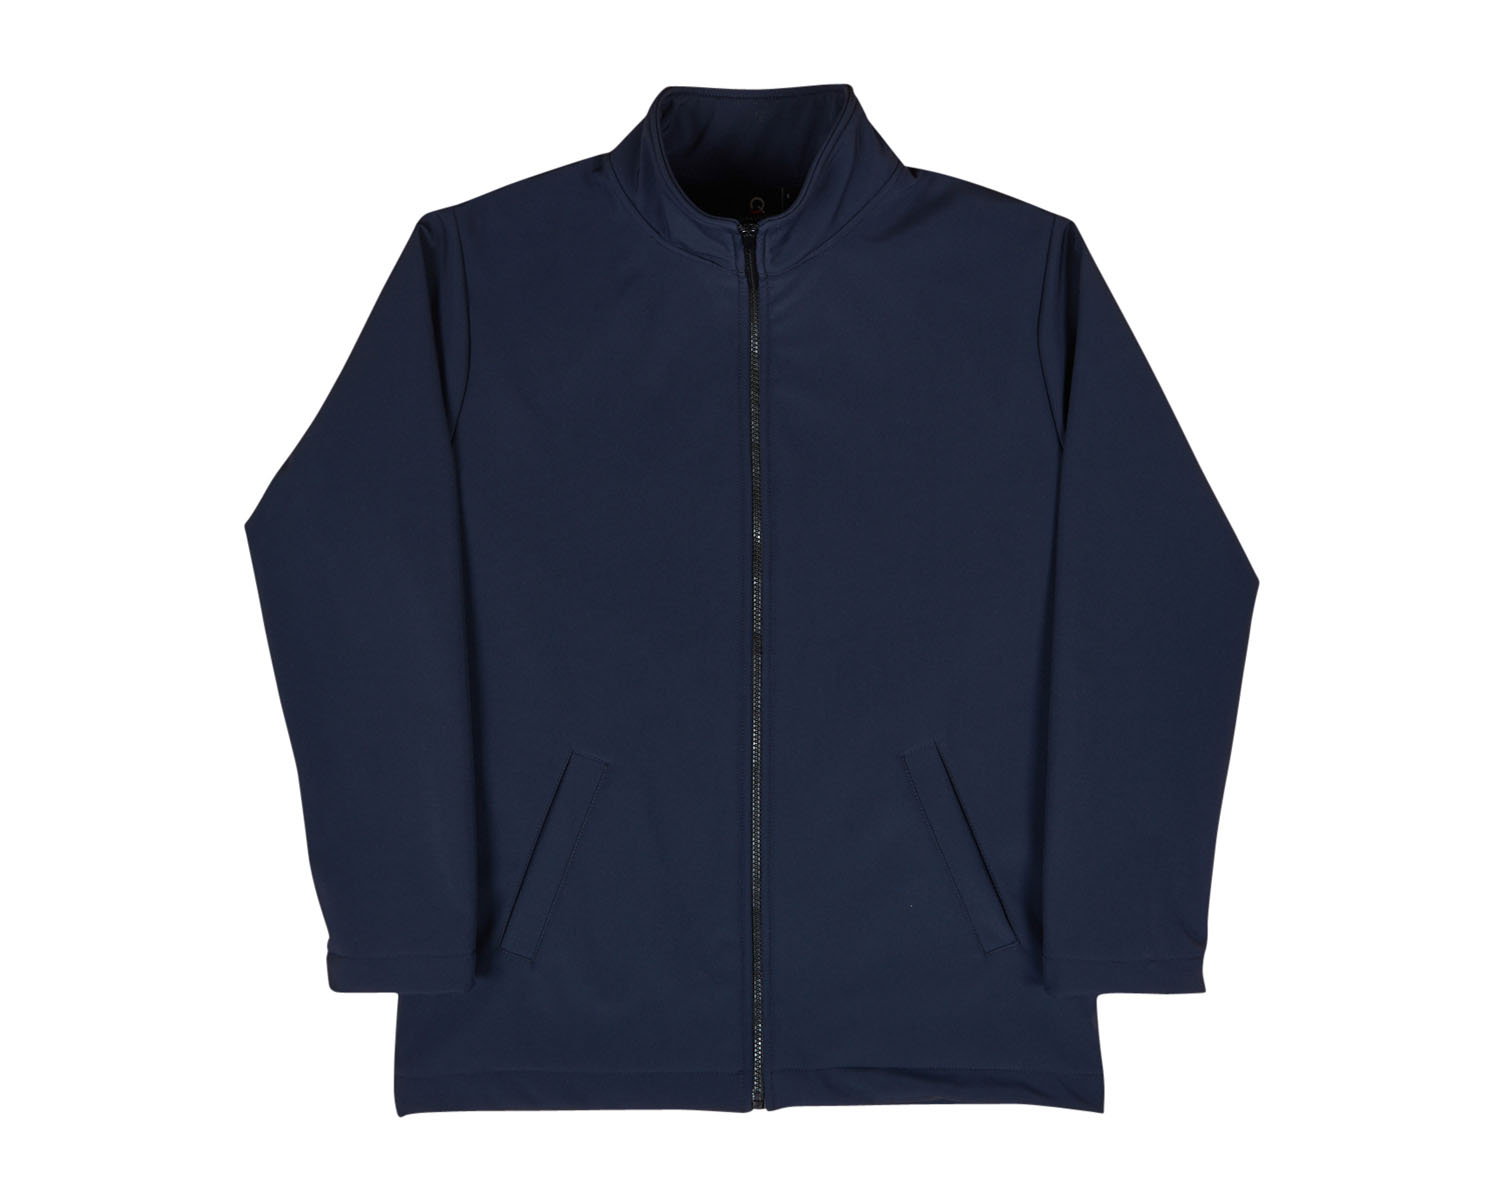 How to Choose Soft Shell Jacket